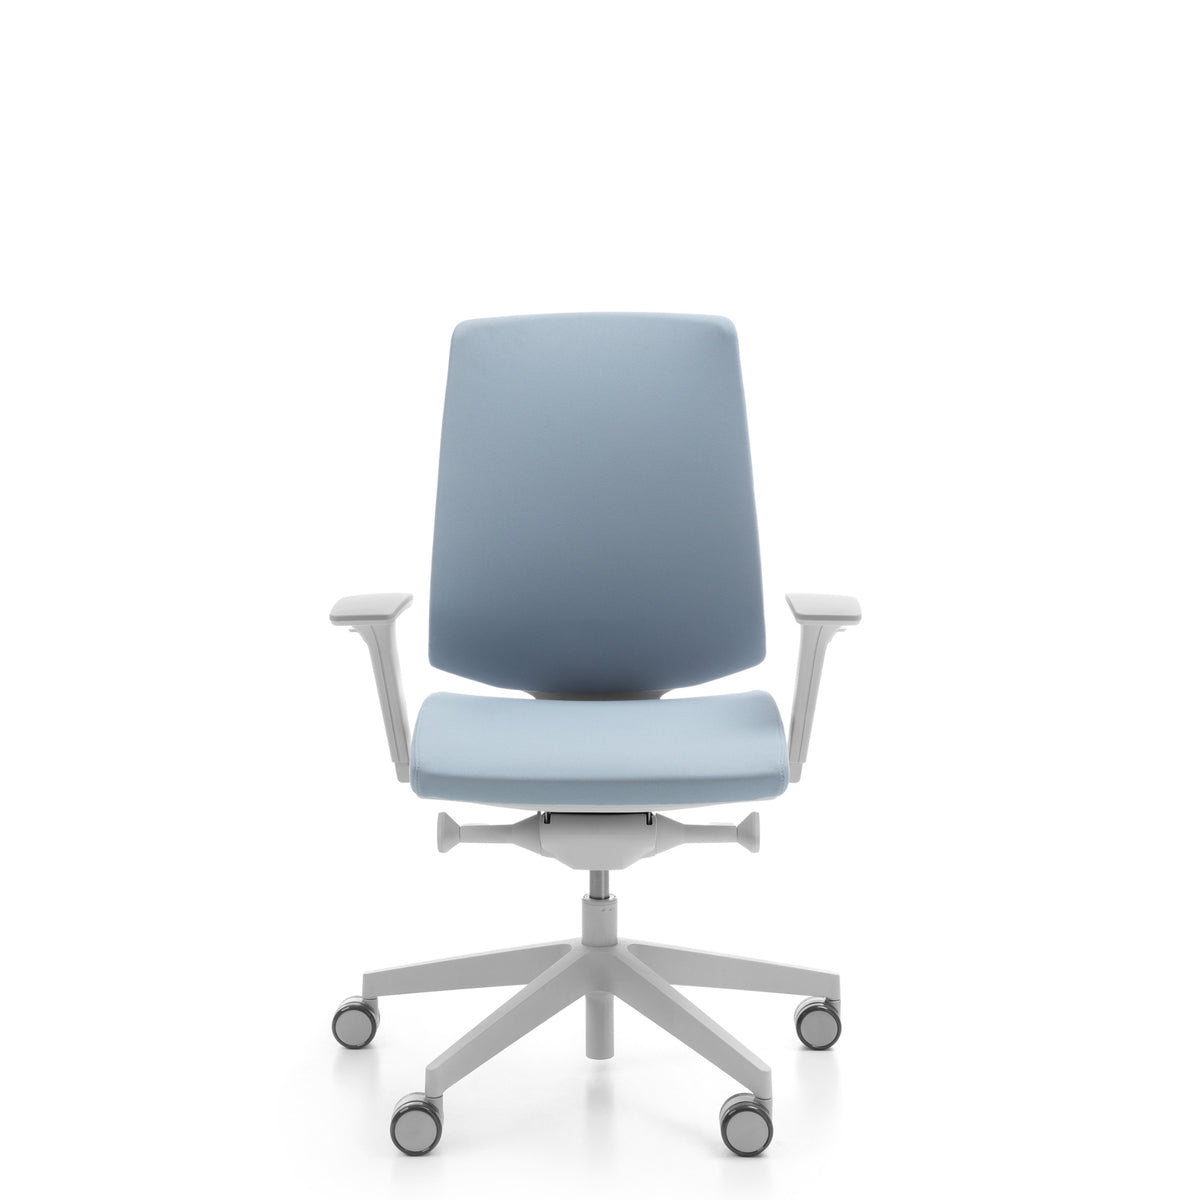 Spacestor LightUp Office Chair Grey Base